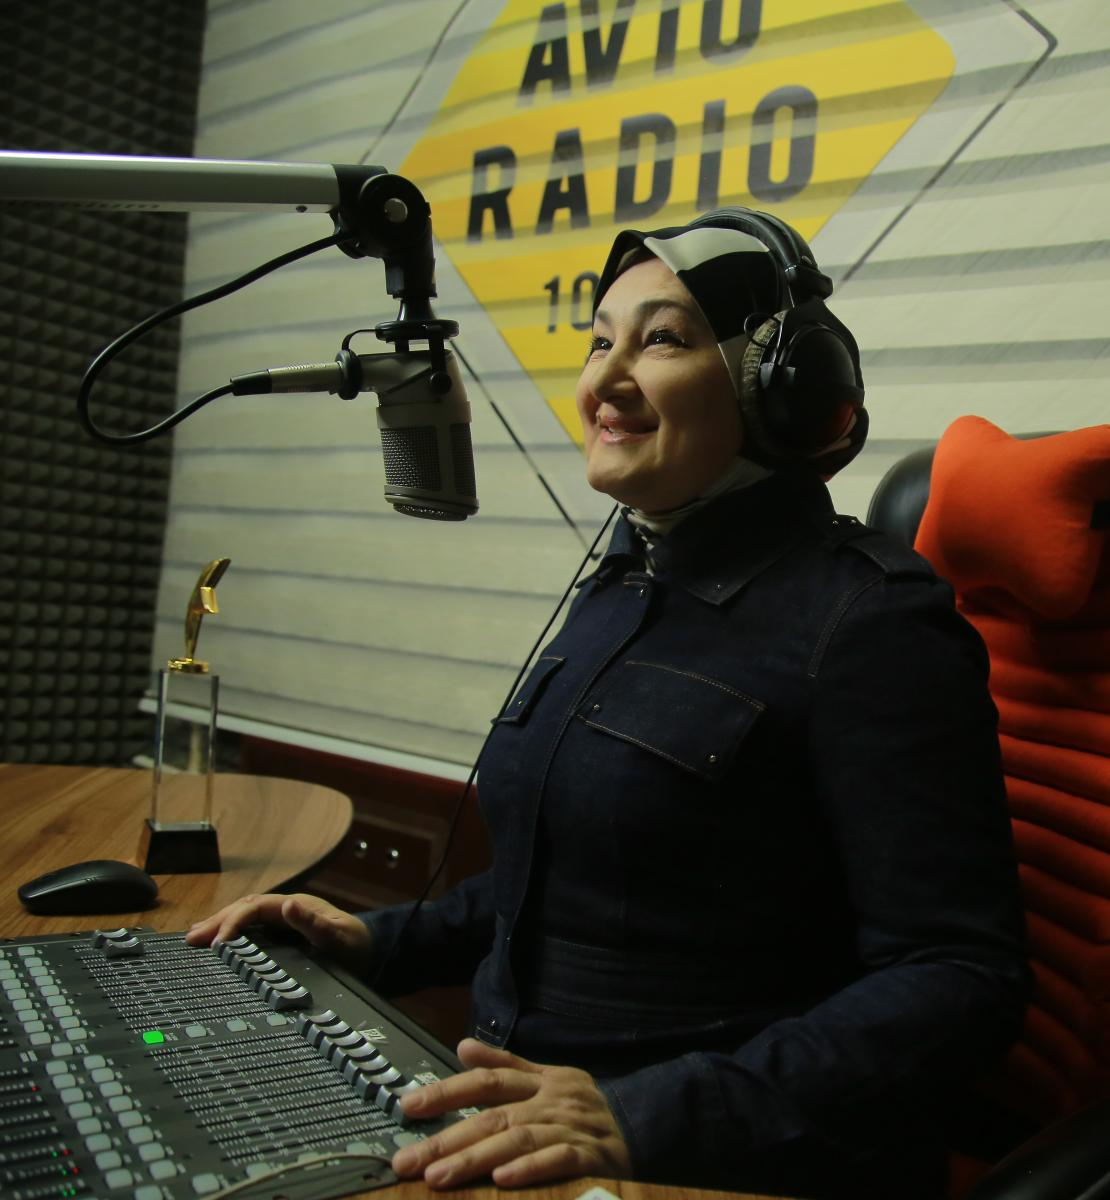 A woman dressed in black sits at a desk with a microphone and radio equipment.